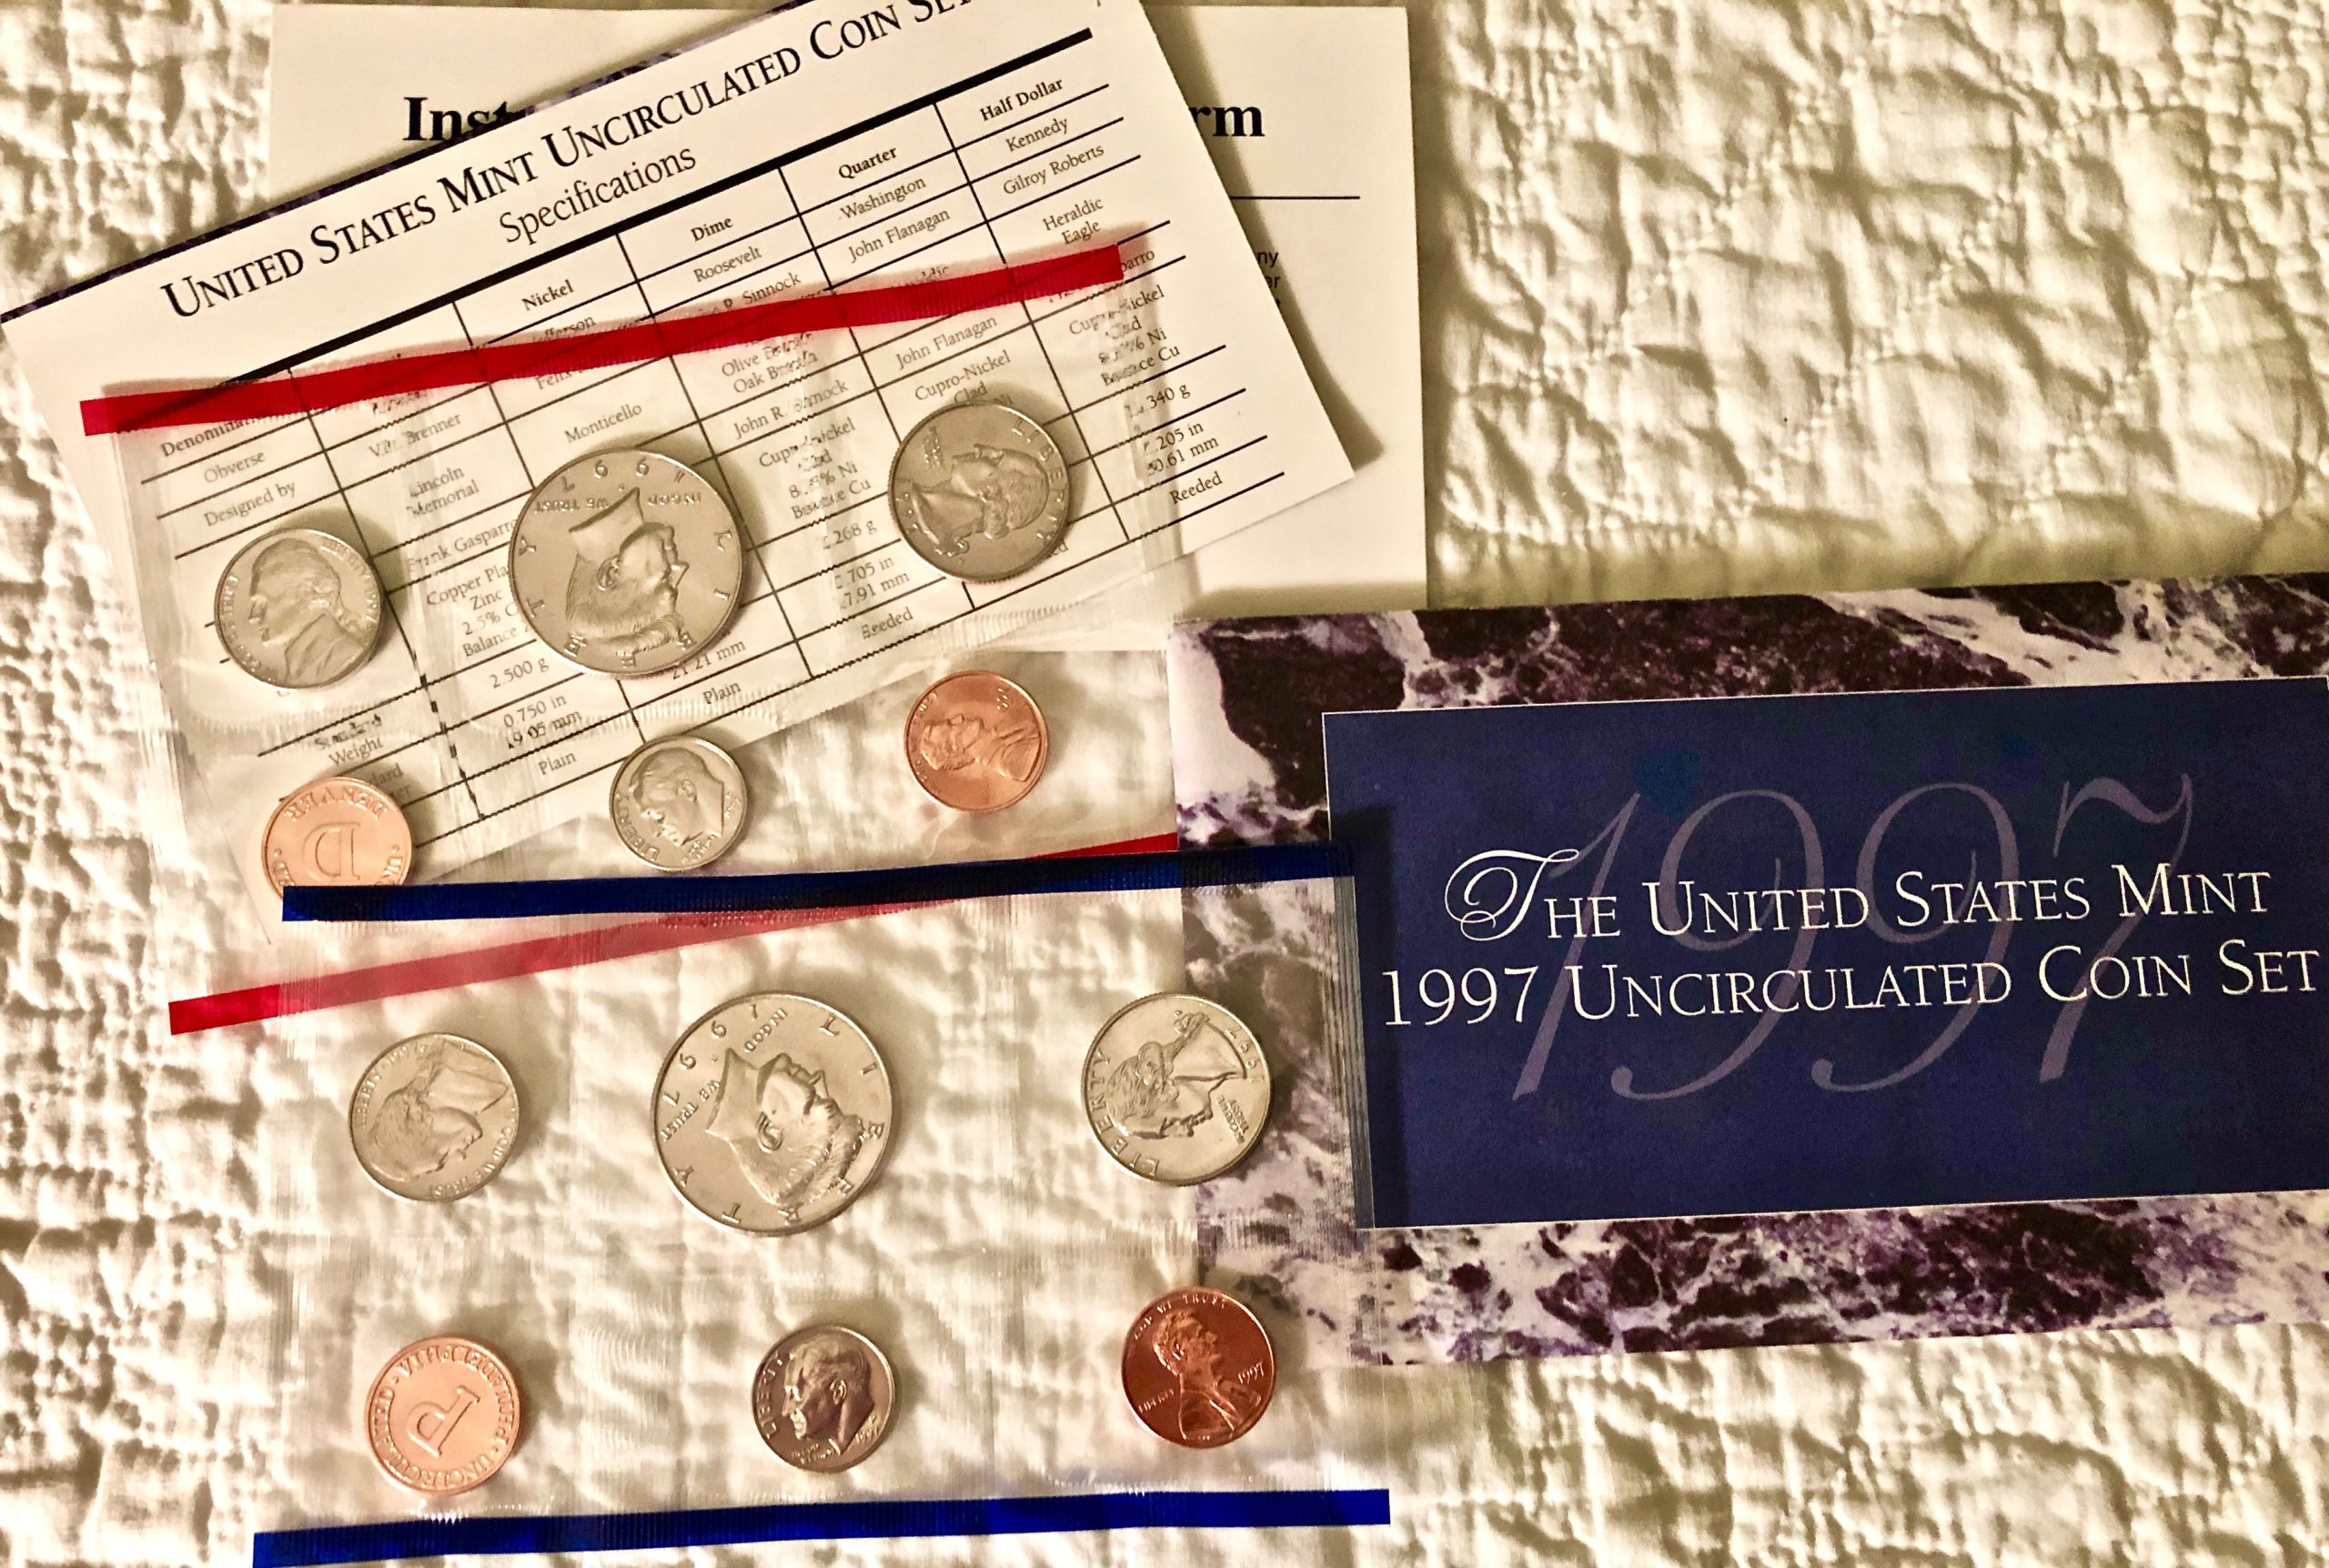 Item HG 16 - 1997 US Mint Uncirculated Coin Set of 10 Coins